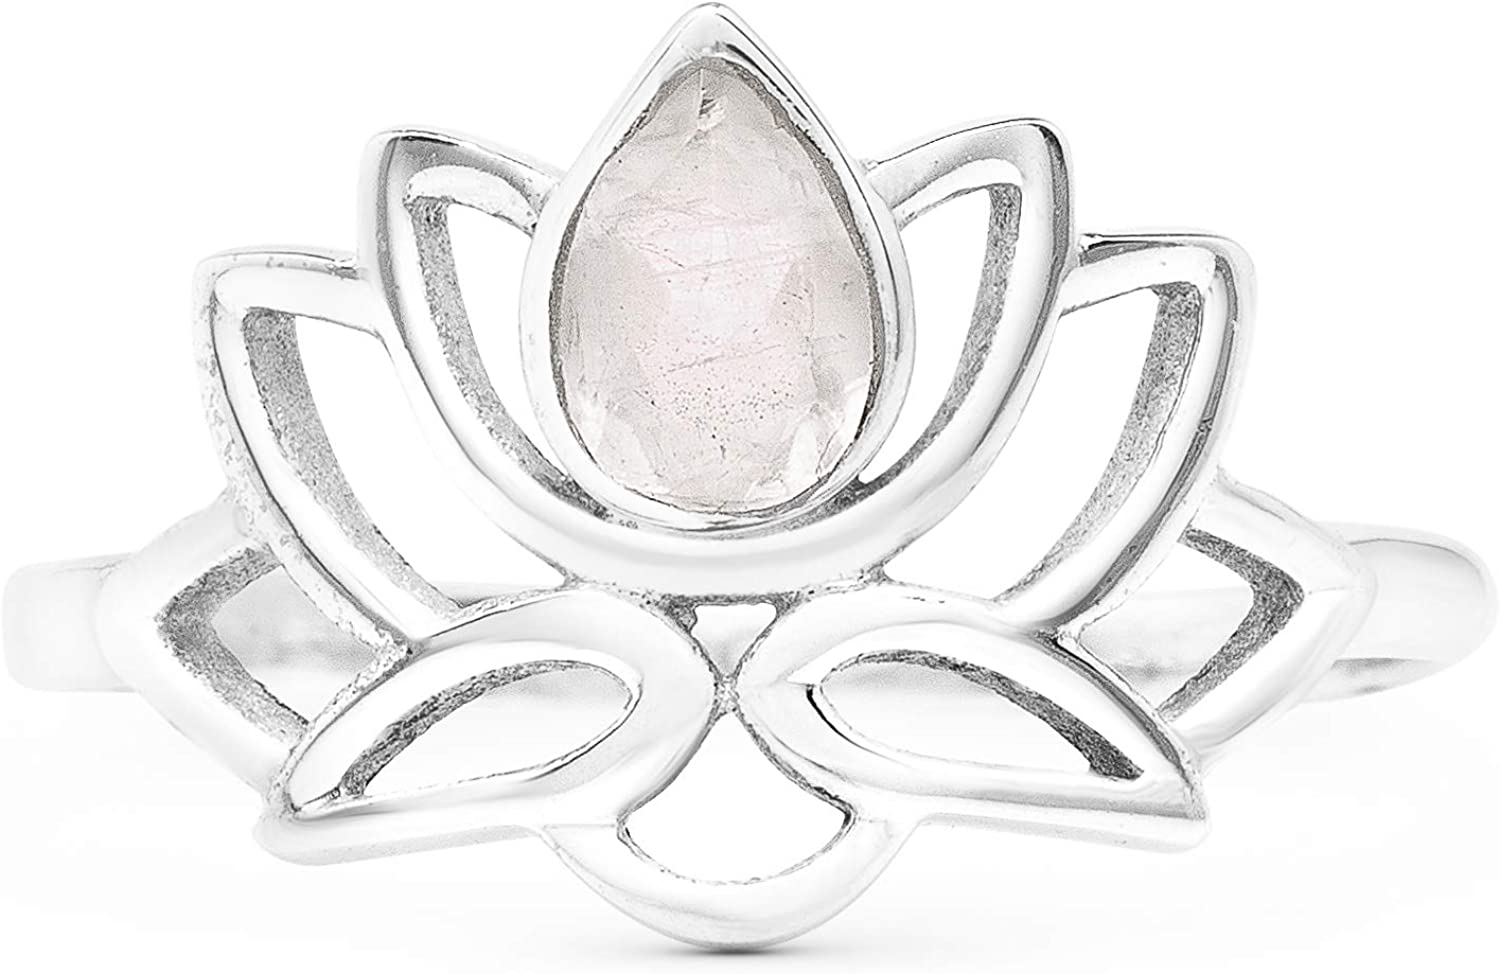 Direct sale of manufacturer Koral Jewelry Cut Pear Moonstone Cheap mail order sales Lotus Silver Sterling 925 Ring